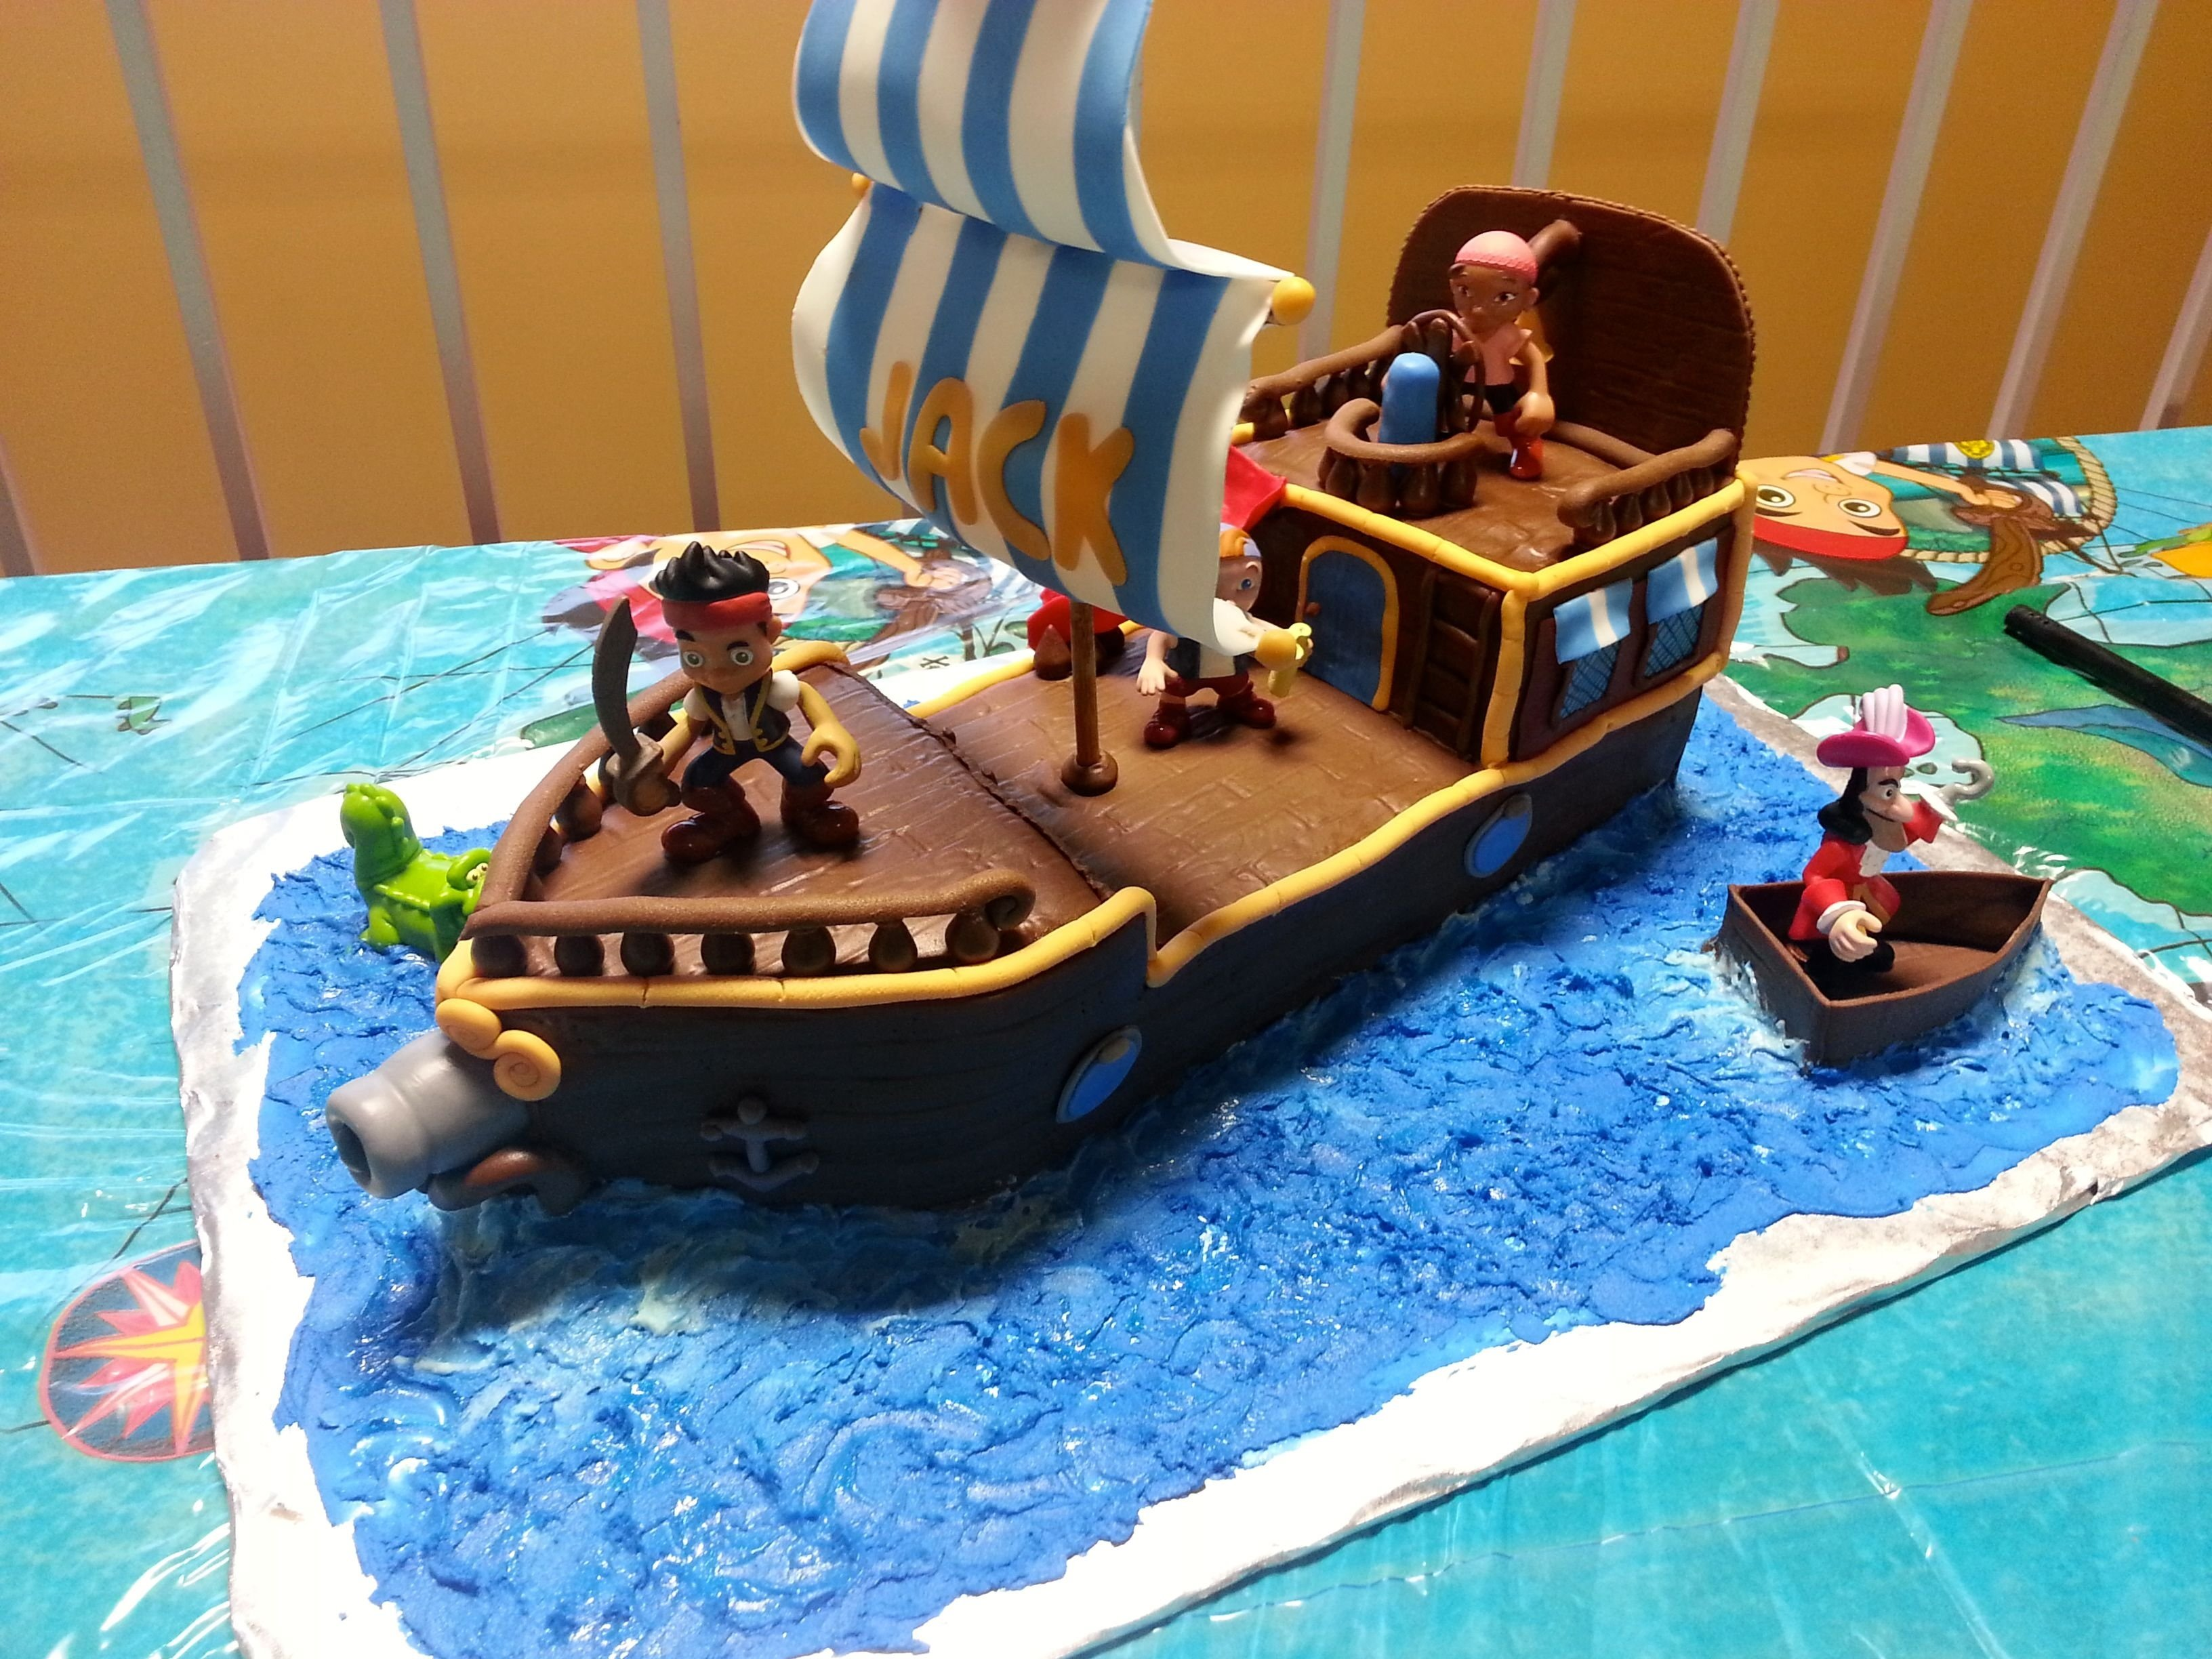 10 Lovable Jake And The Neverland Pirates Decoration Ideas jake and the neverland pirates cake jake and the neverland pirate 3 2020